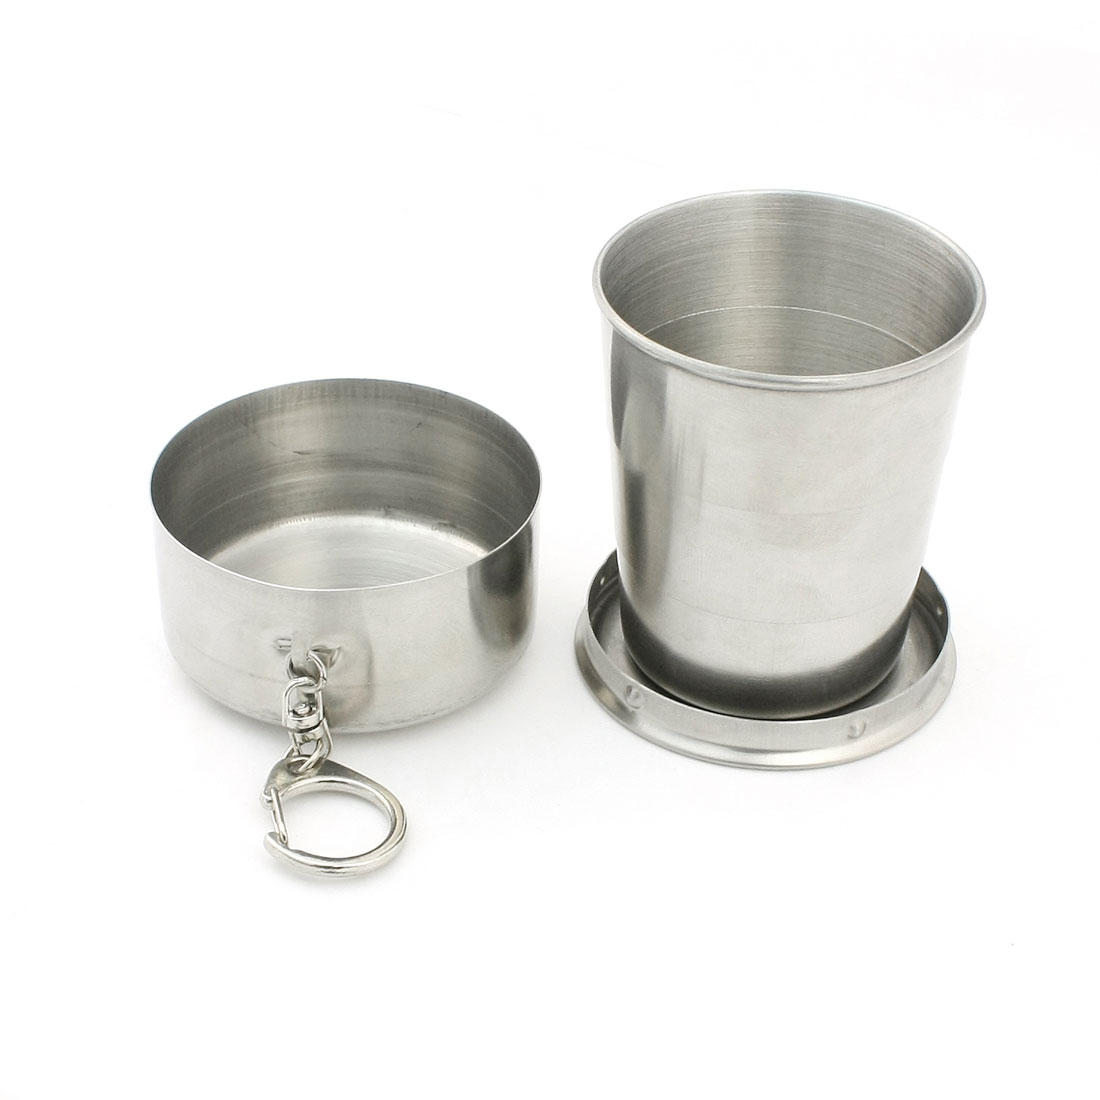 Protable Lobster Hook Stainless Steel Retractable Cup Silver Tone